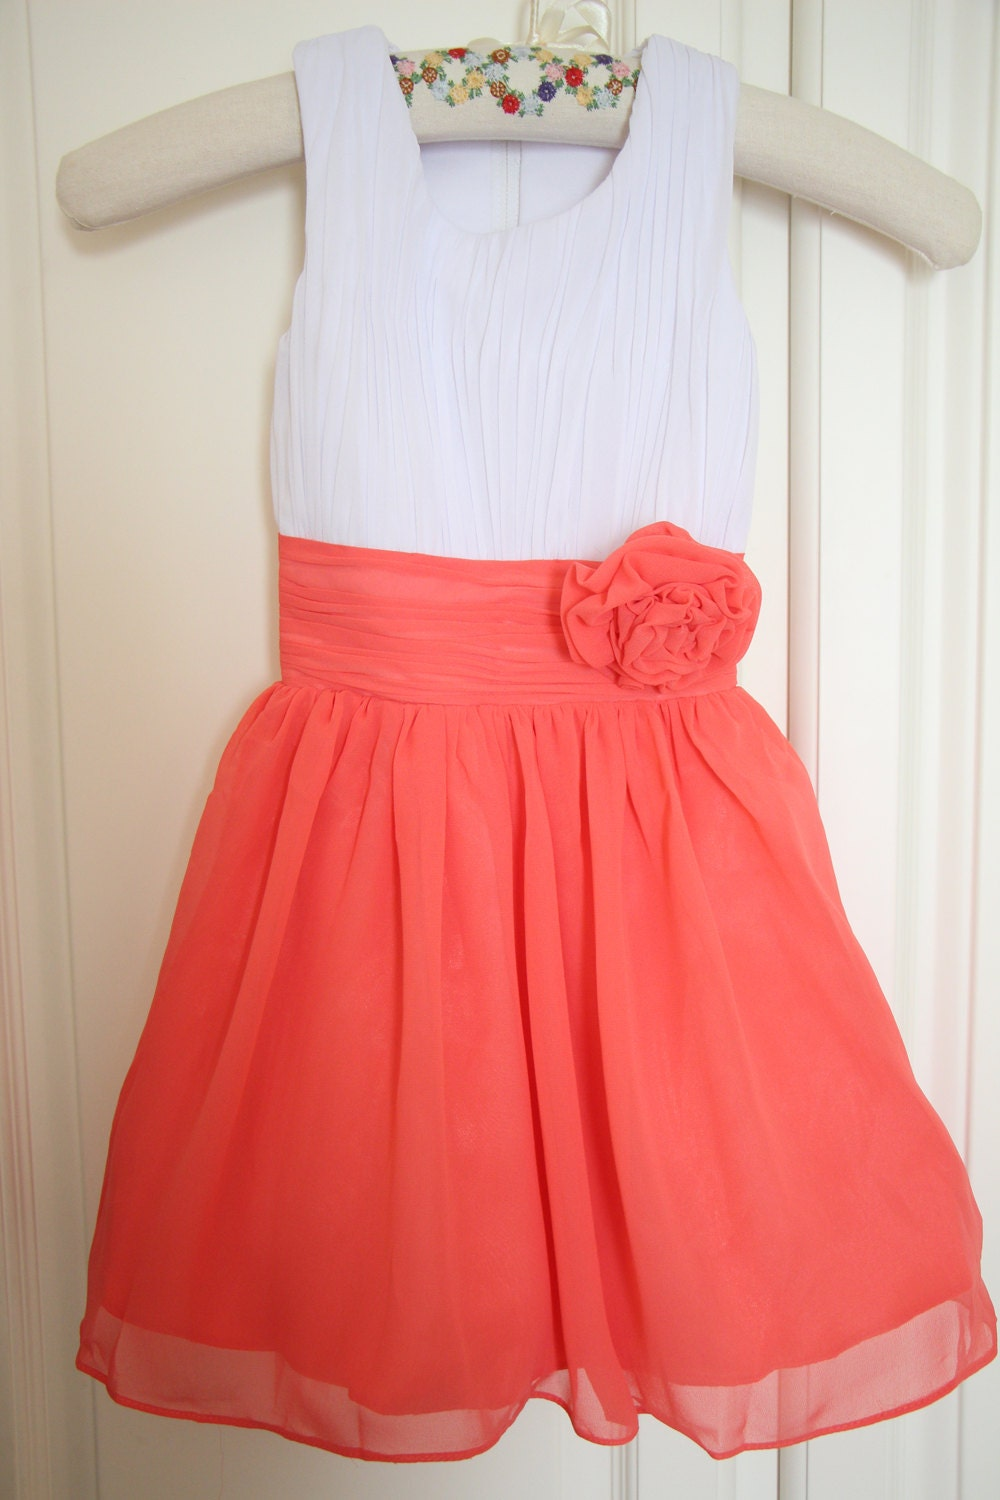 Corals, Peaches, Oranges; Flower Girl Dress Style CORAL One Shoulder Satin and Organza Dress with Sequin Bodice. $ $ Coral. Girls Dress Style Sleeveless Lace Dress with Flower and Sash in Choice of Color. $ $ Choice of Coral or Jade.